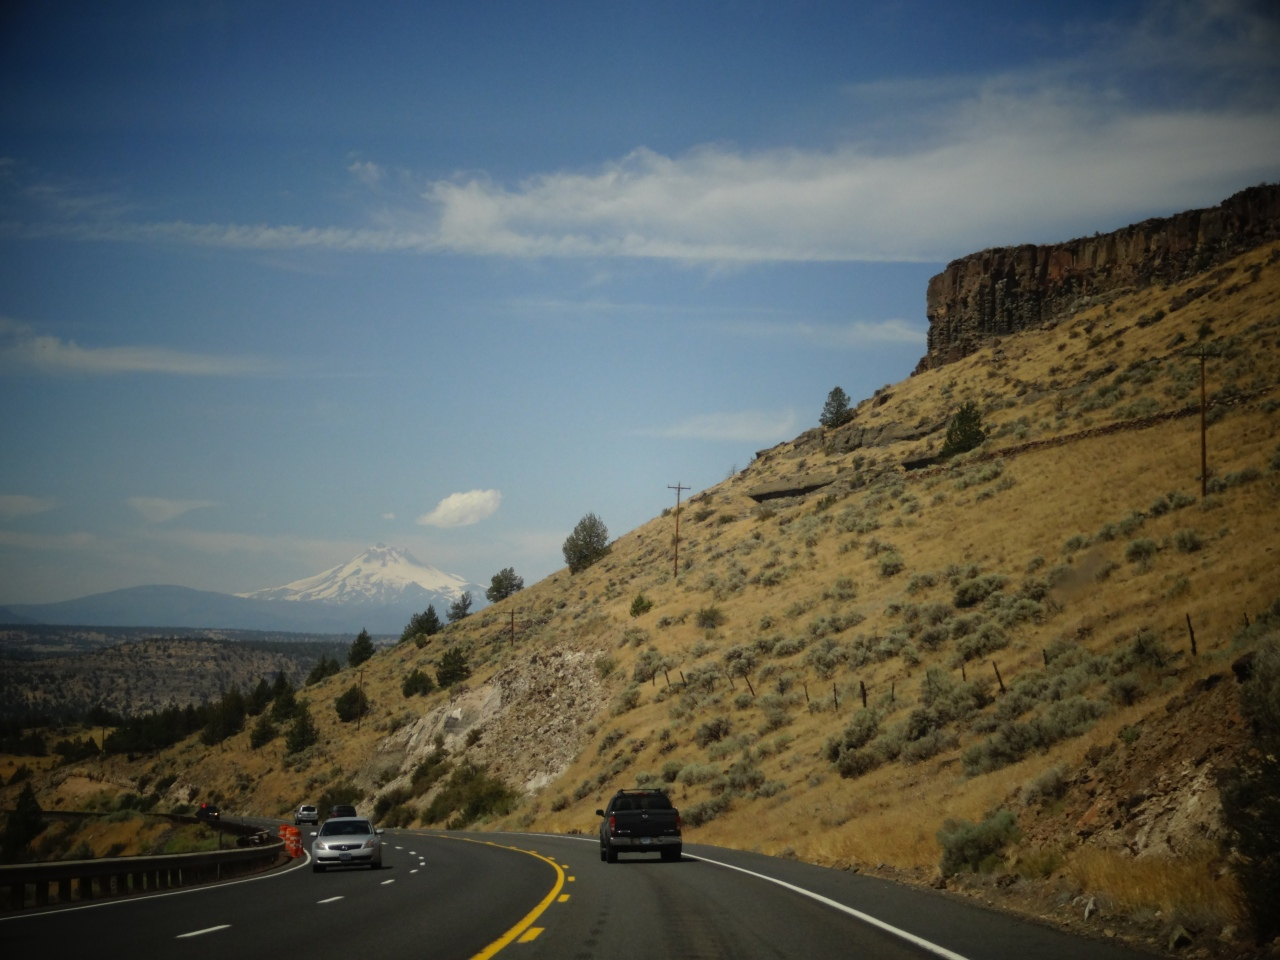 Driving Route 97 in Oregon. That White Peak is Mount Hood at: 11,249 ft (3,429 m)